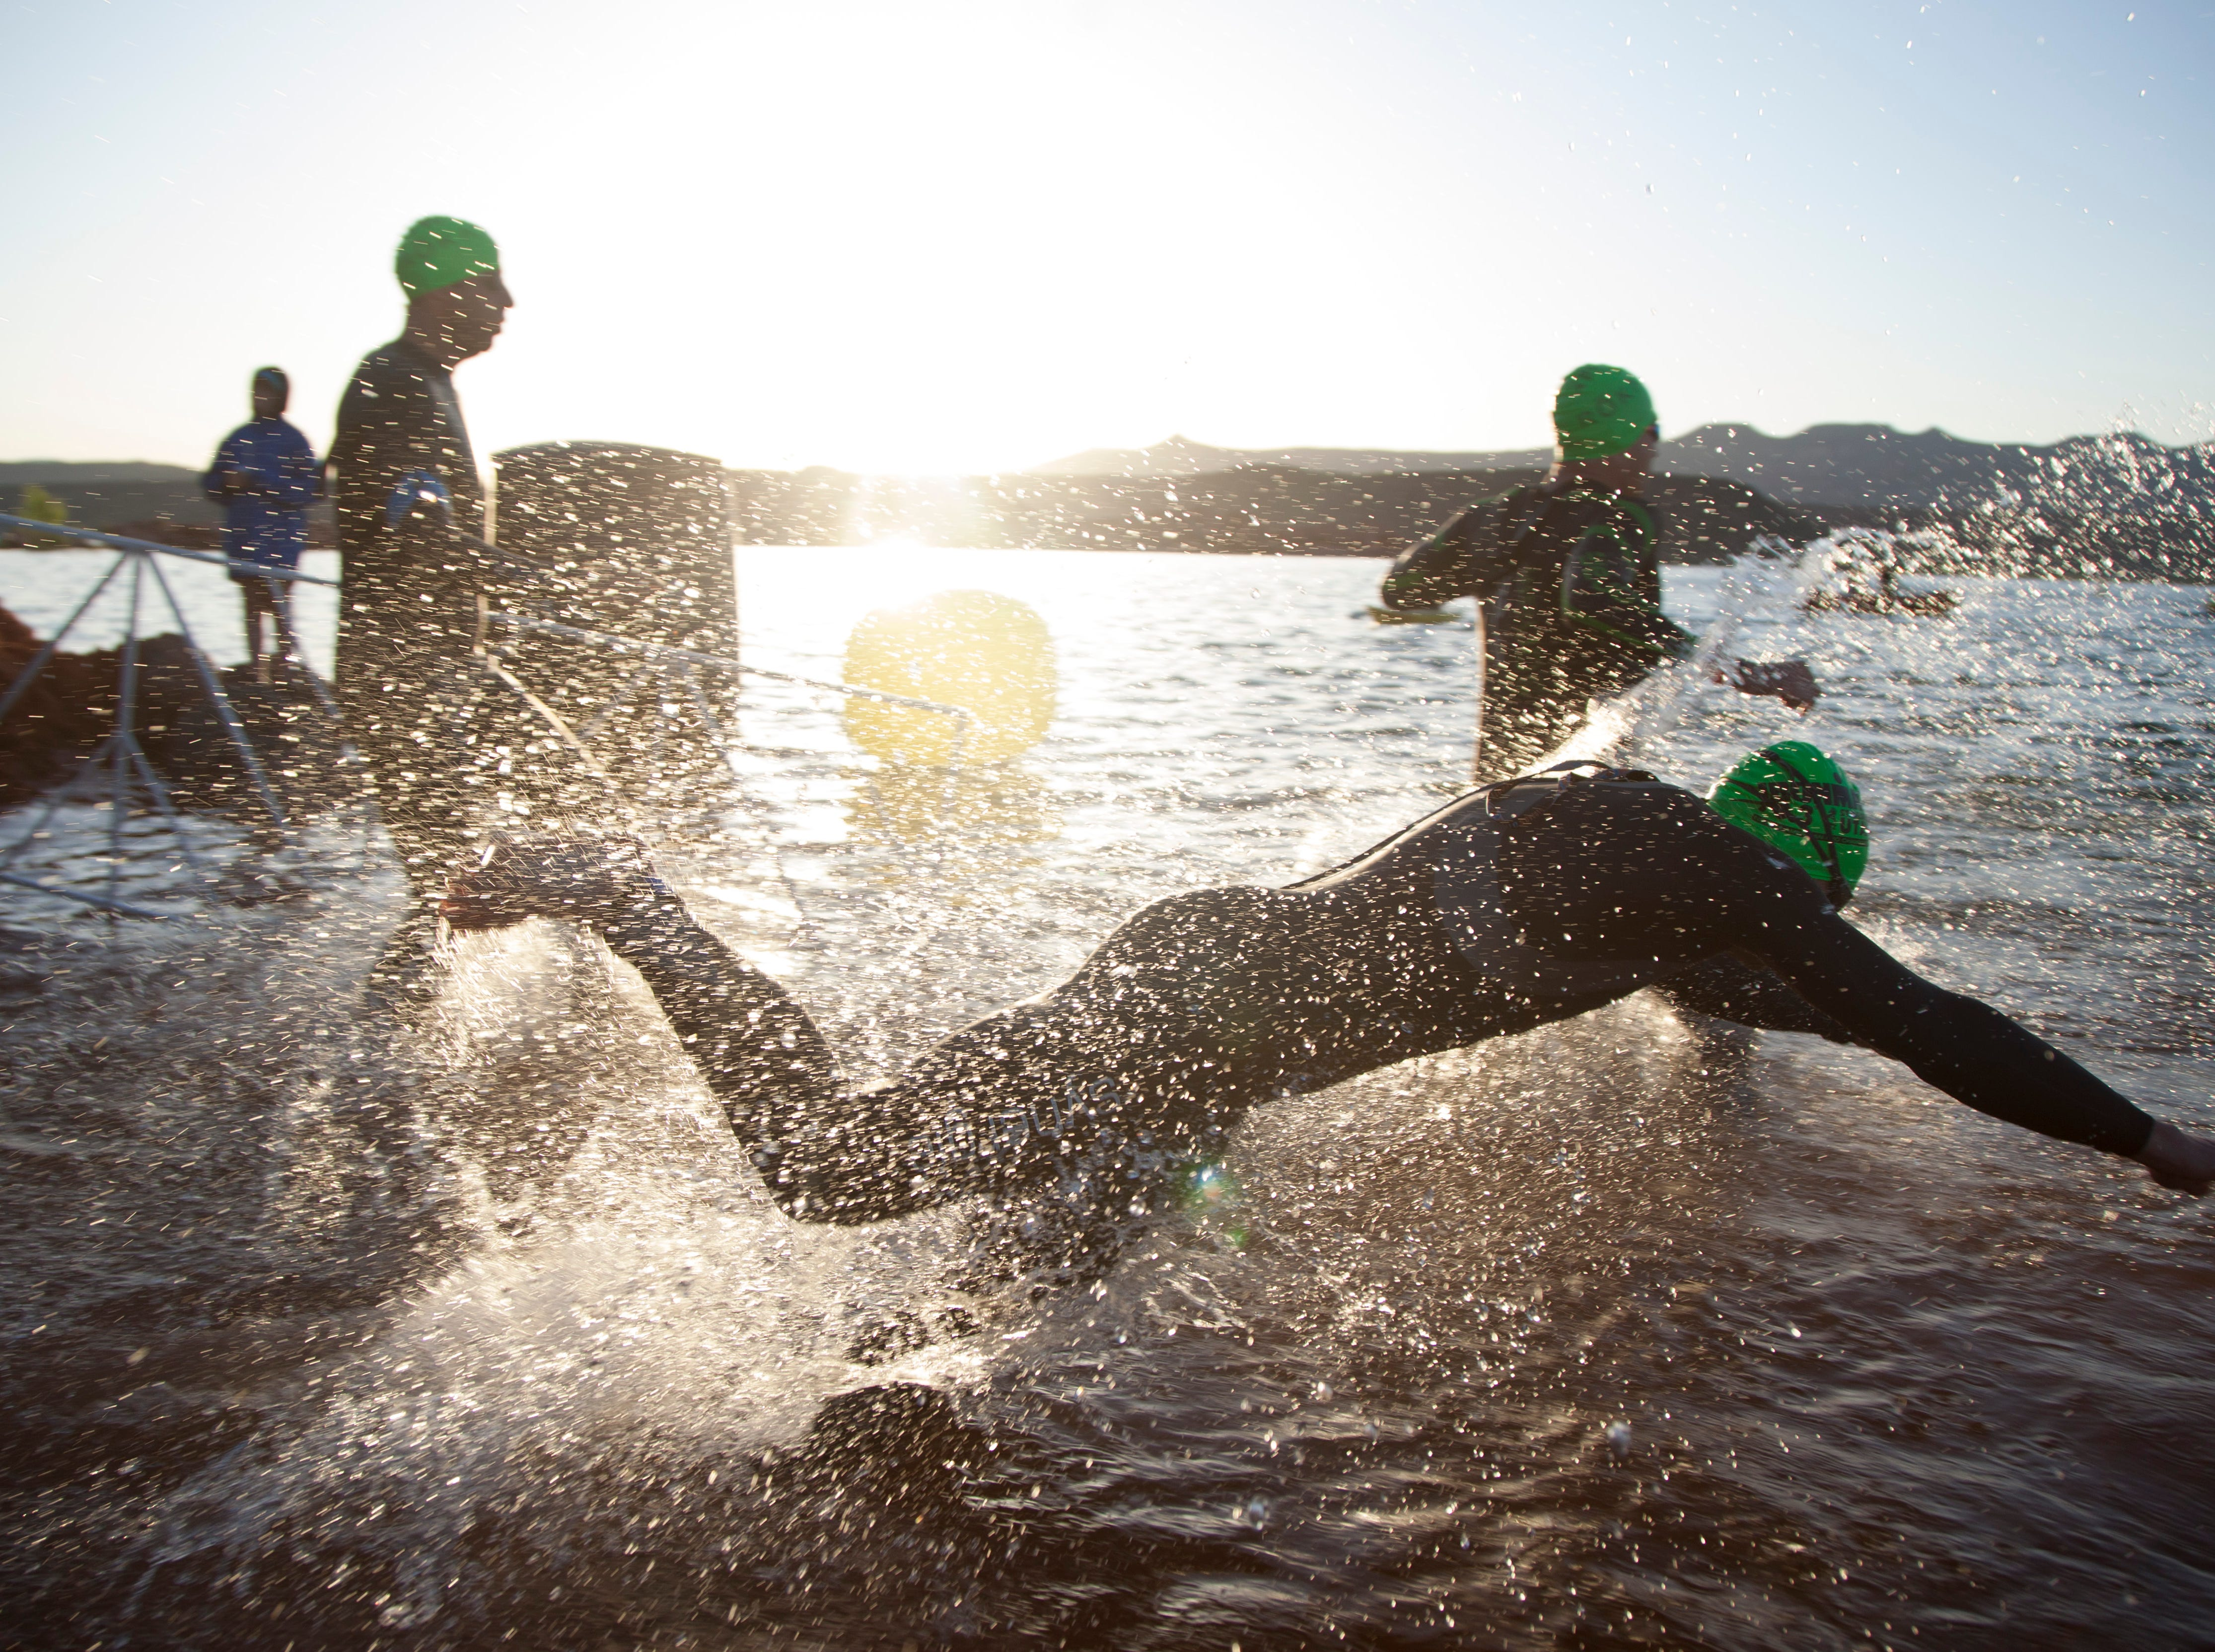 St. George Ironman contestants begin the swim portion of the race Saturday, May 4, 2019.